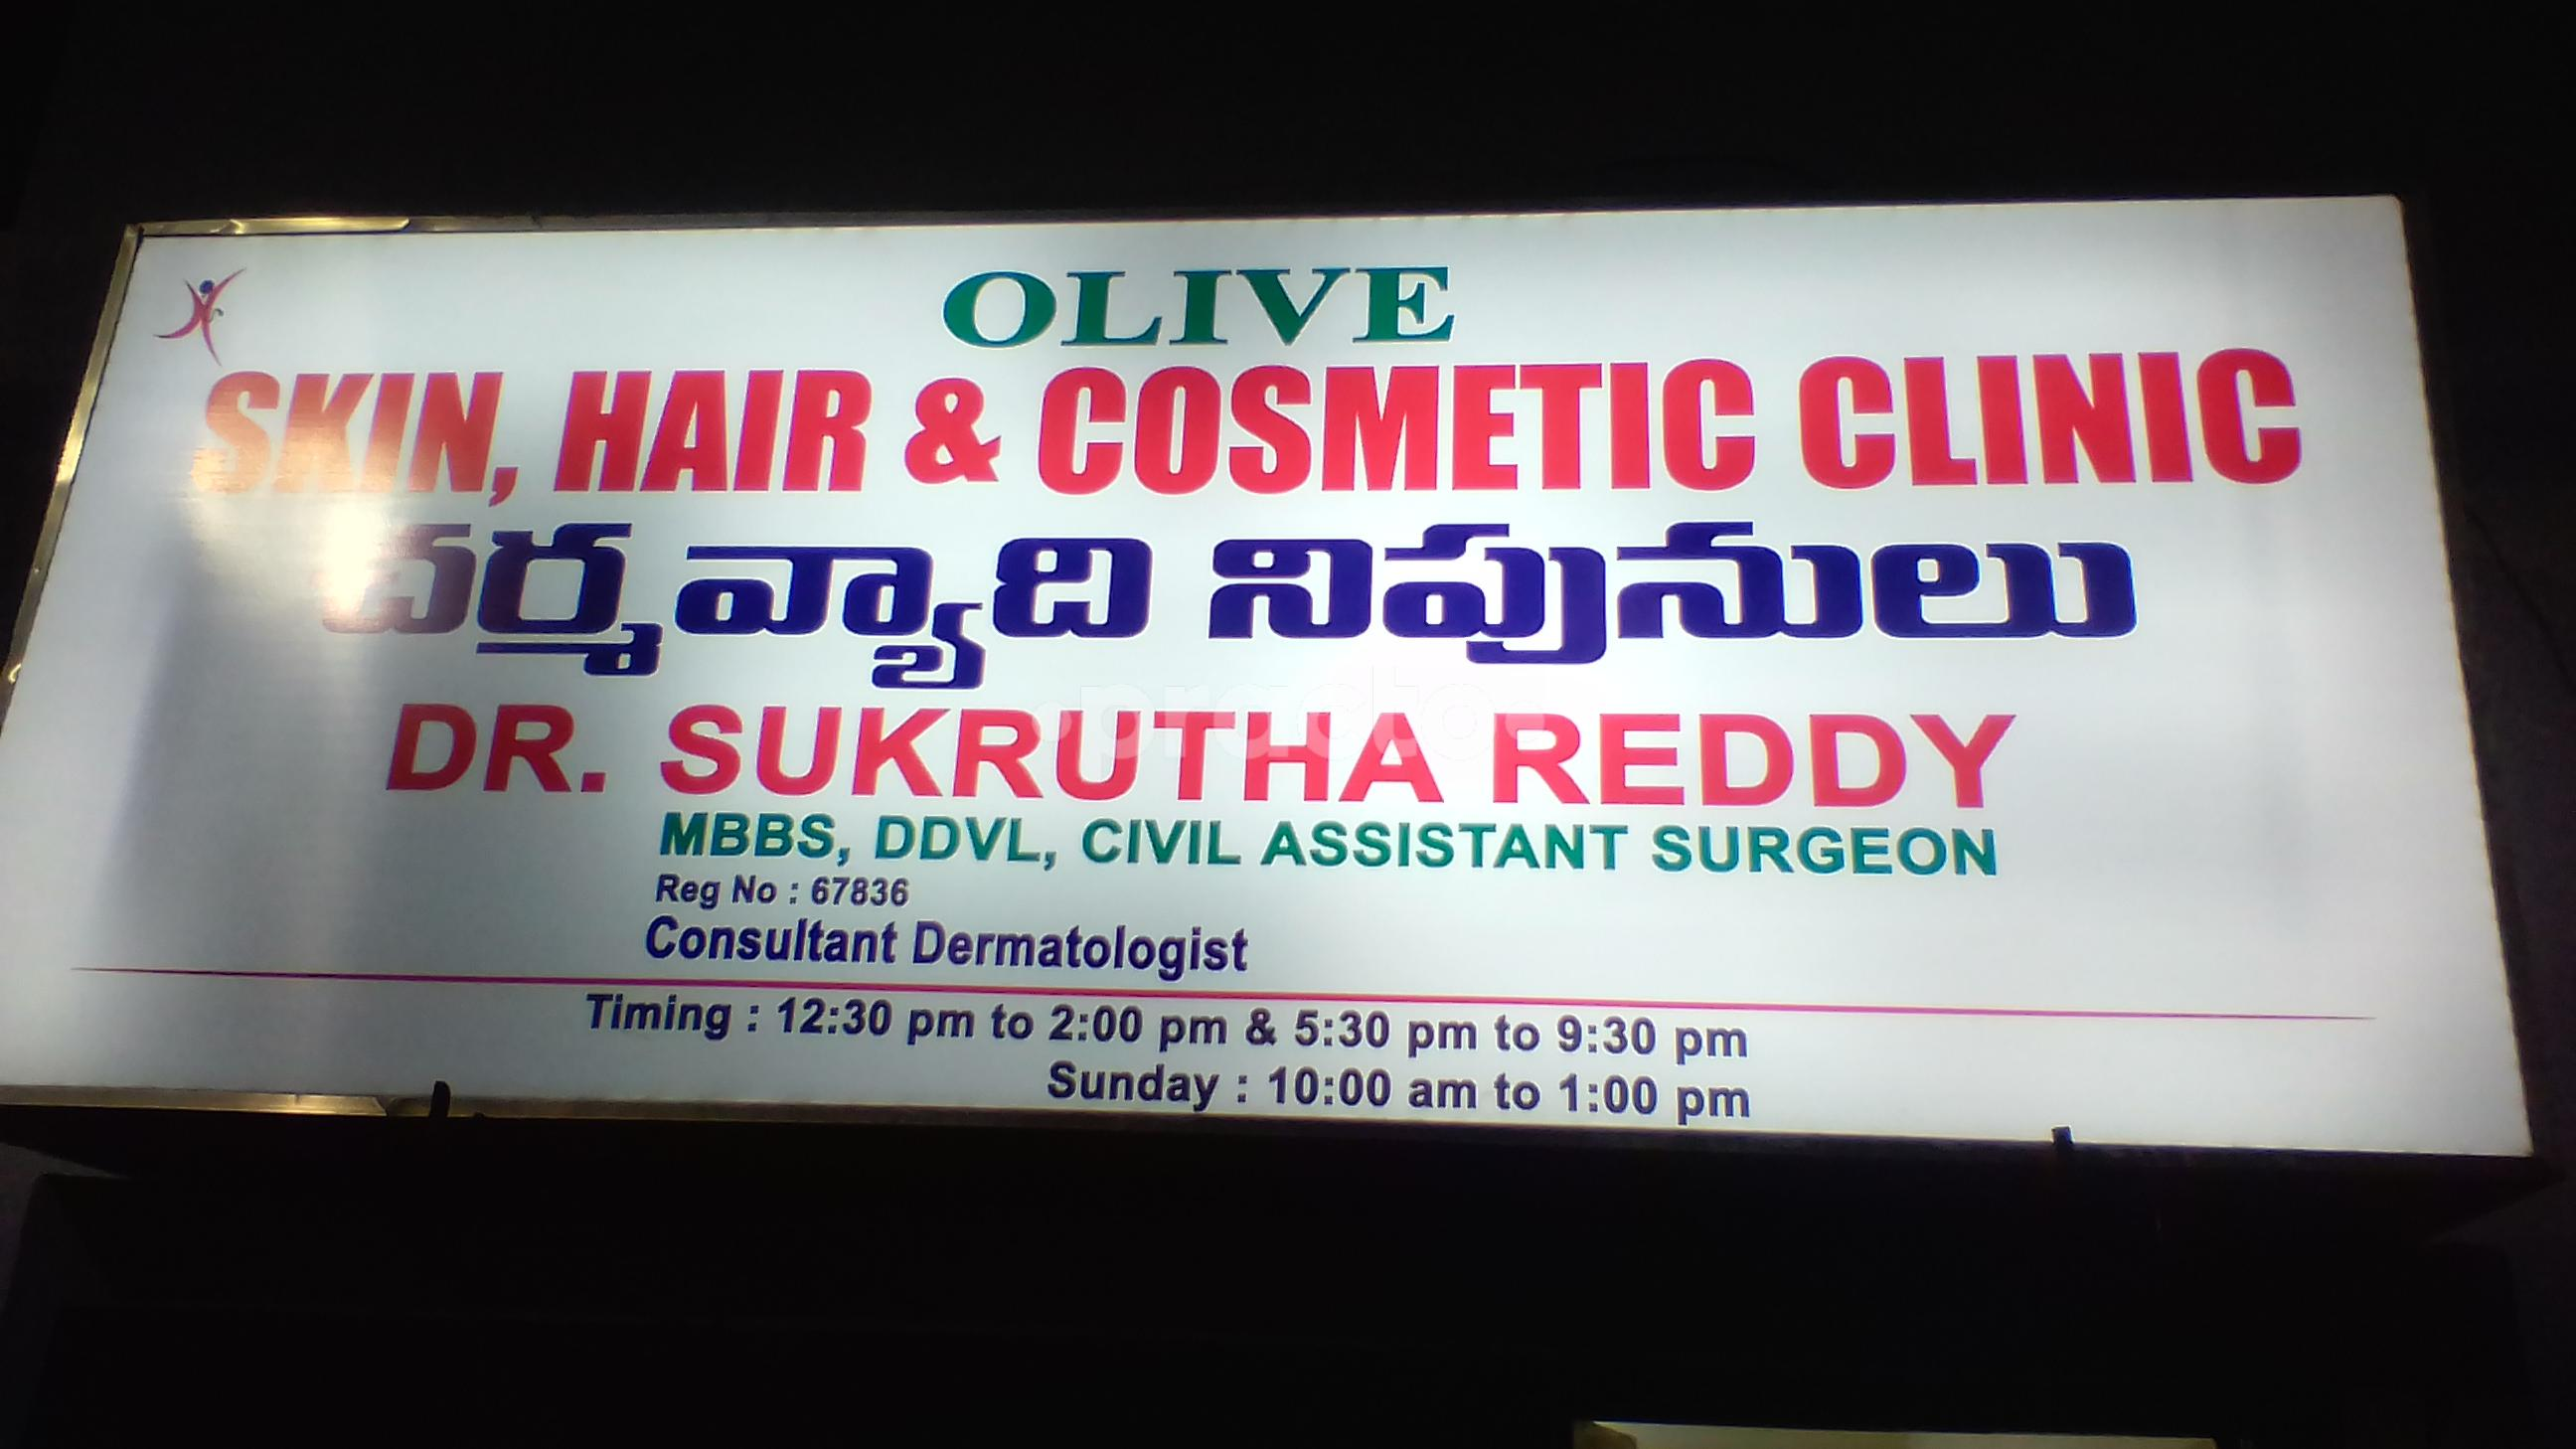 Discussion on this topic: 10 Most Popular Cosmetic Clinics In Hyderabad, 10-most-popular-cosmetic-clinics-in-hyderabad/